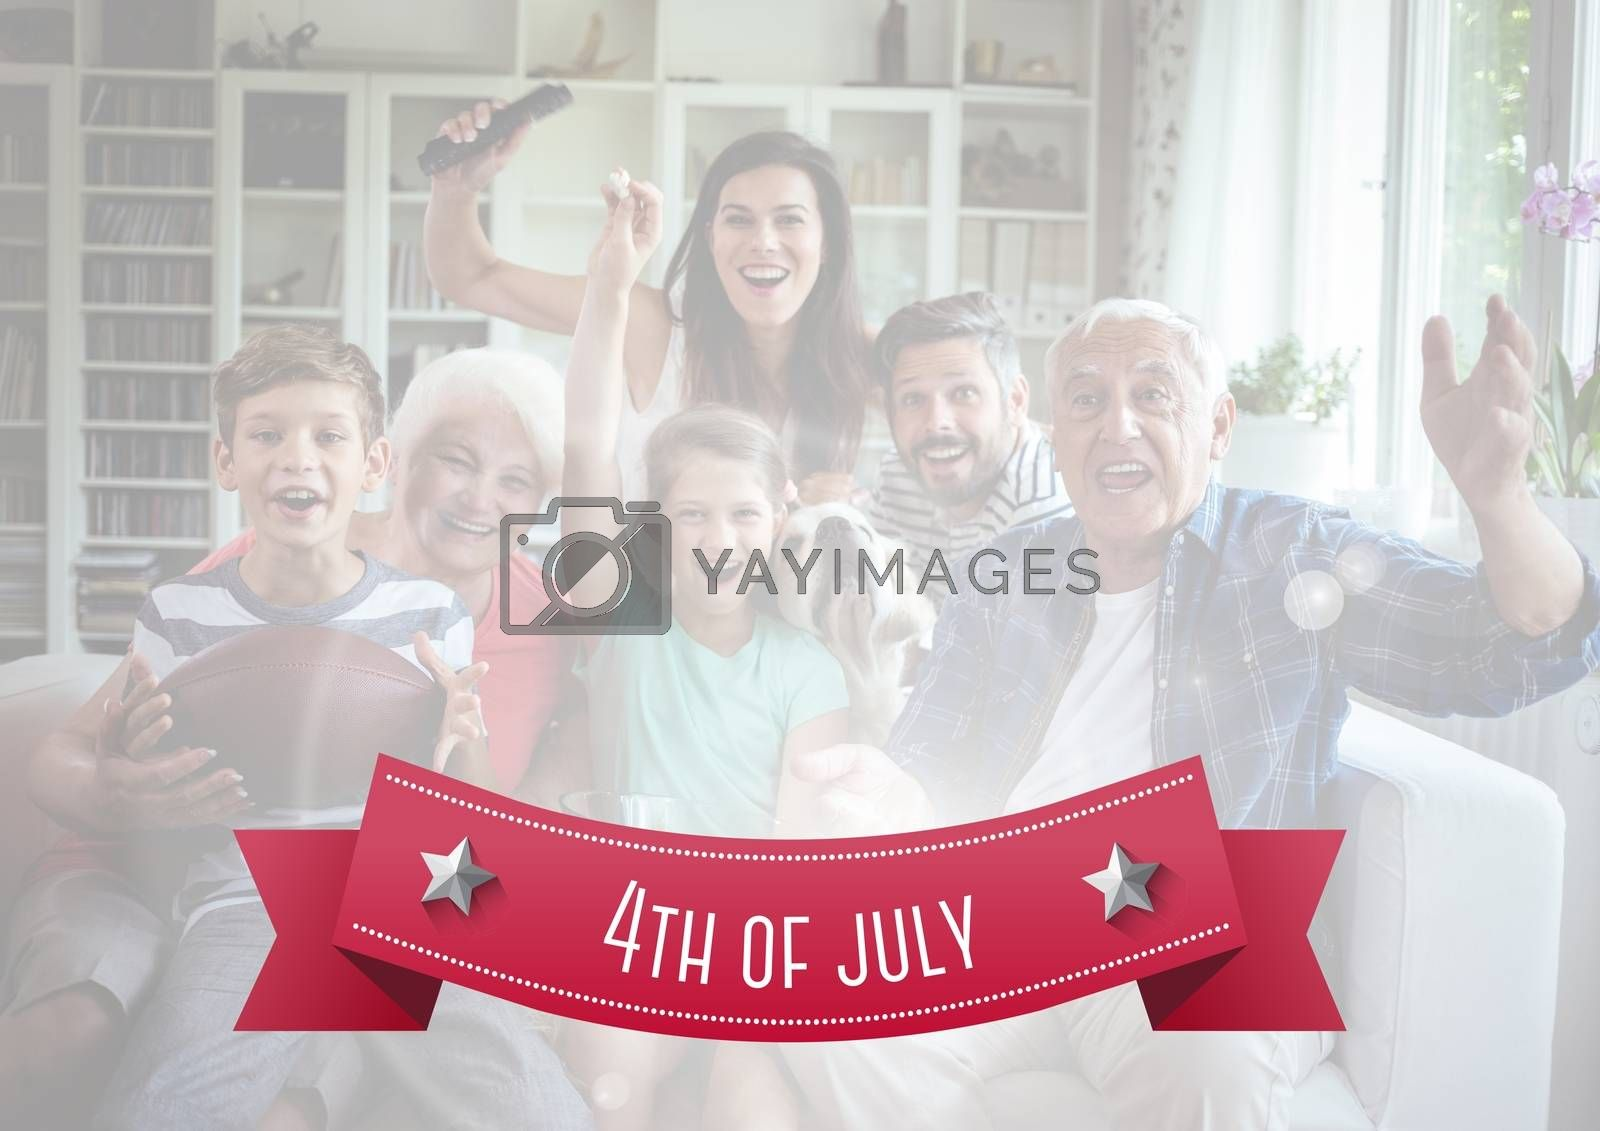 Digital composite of Happy american family on a couch for the 4th of july